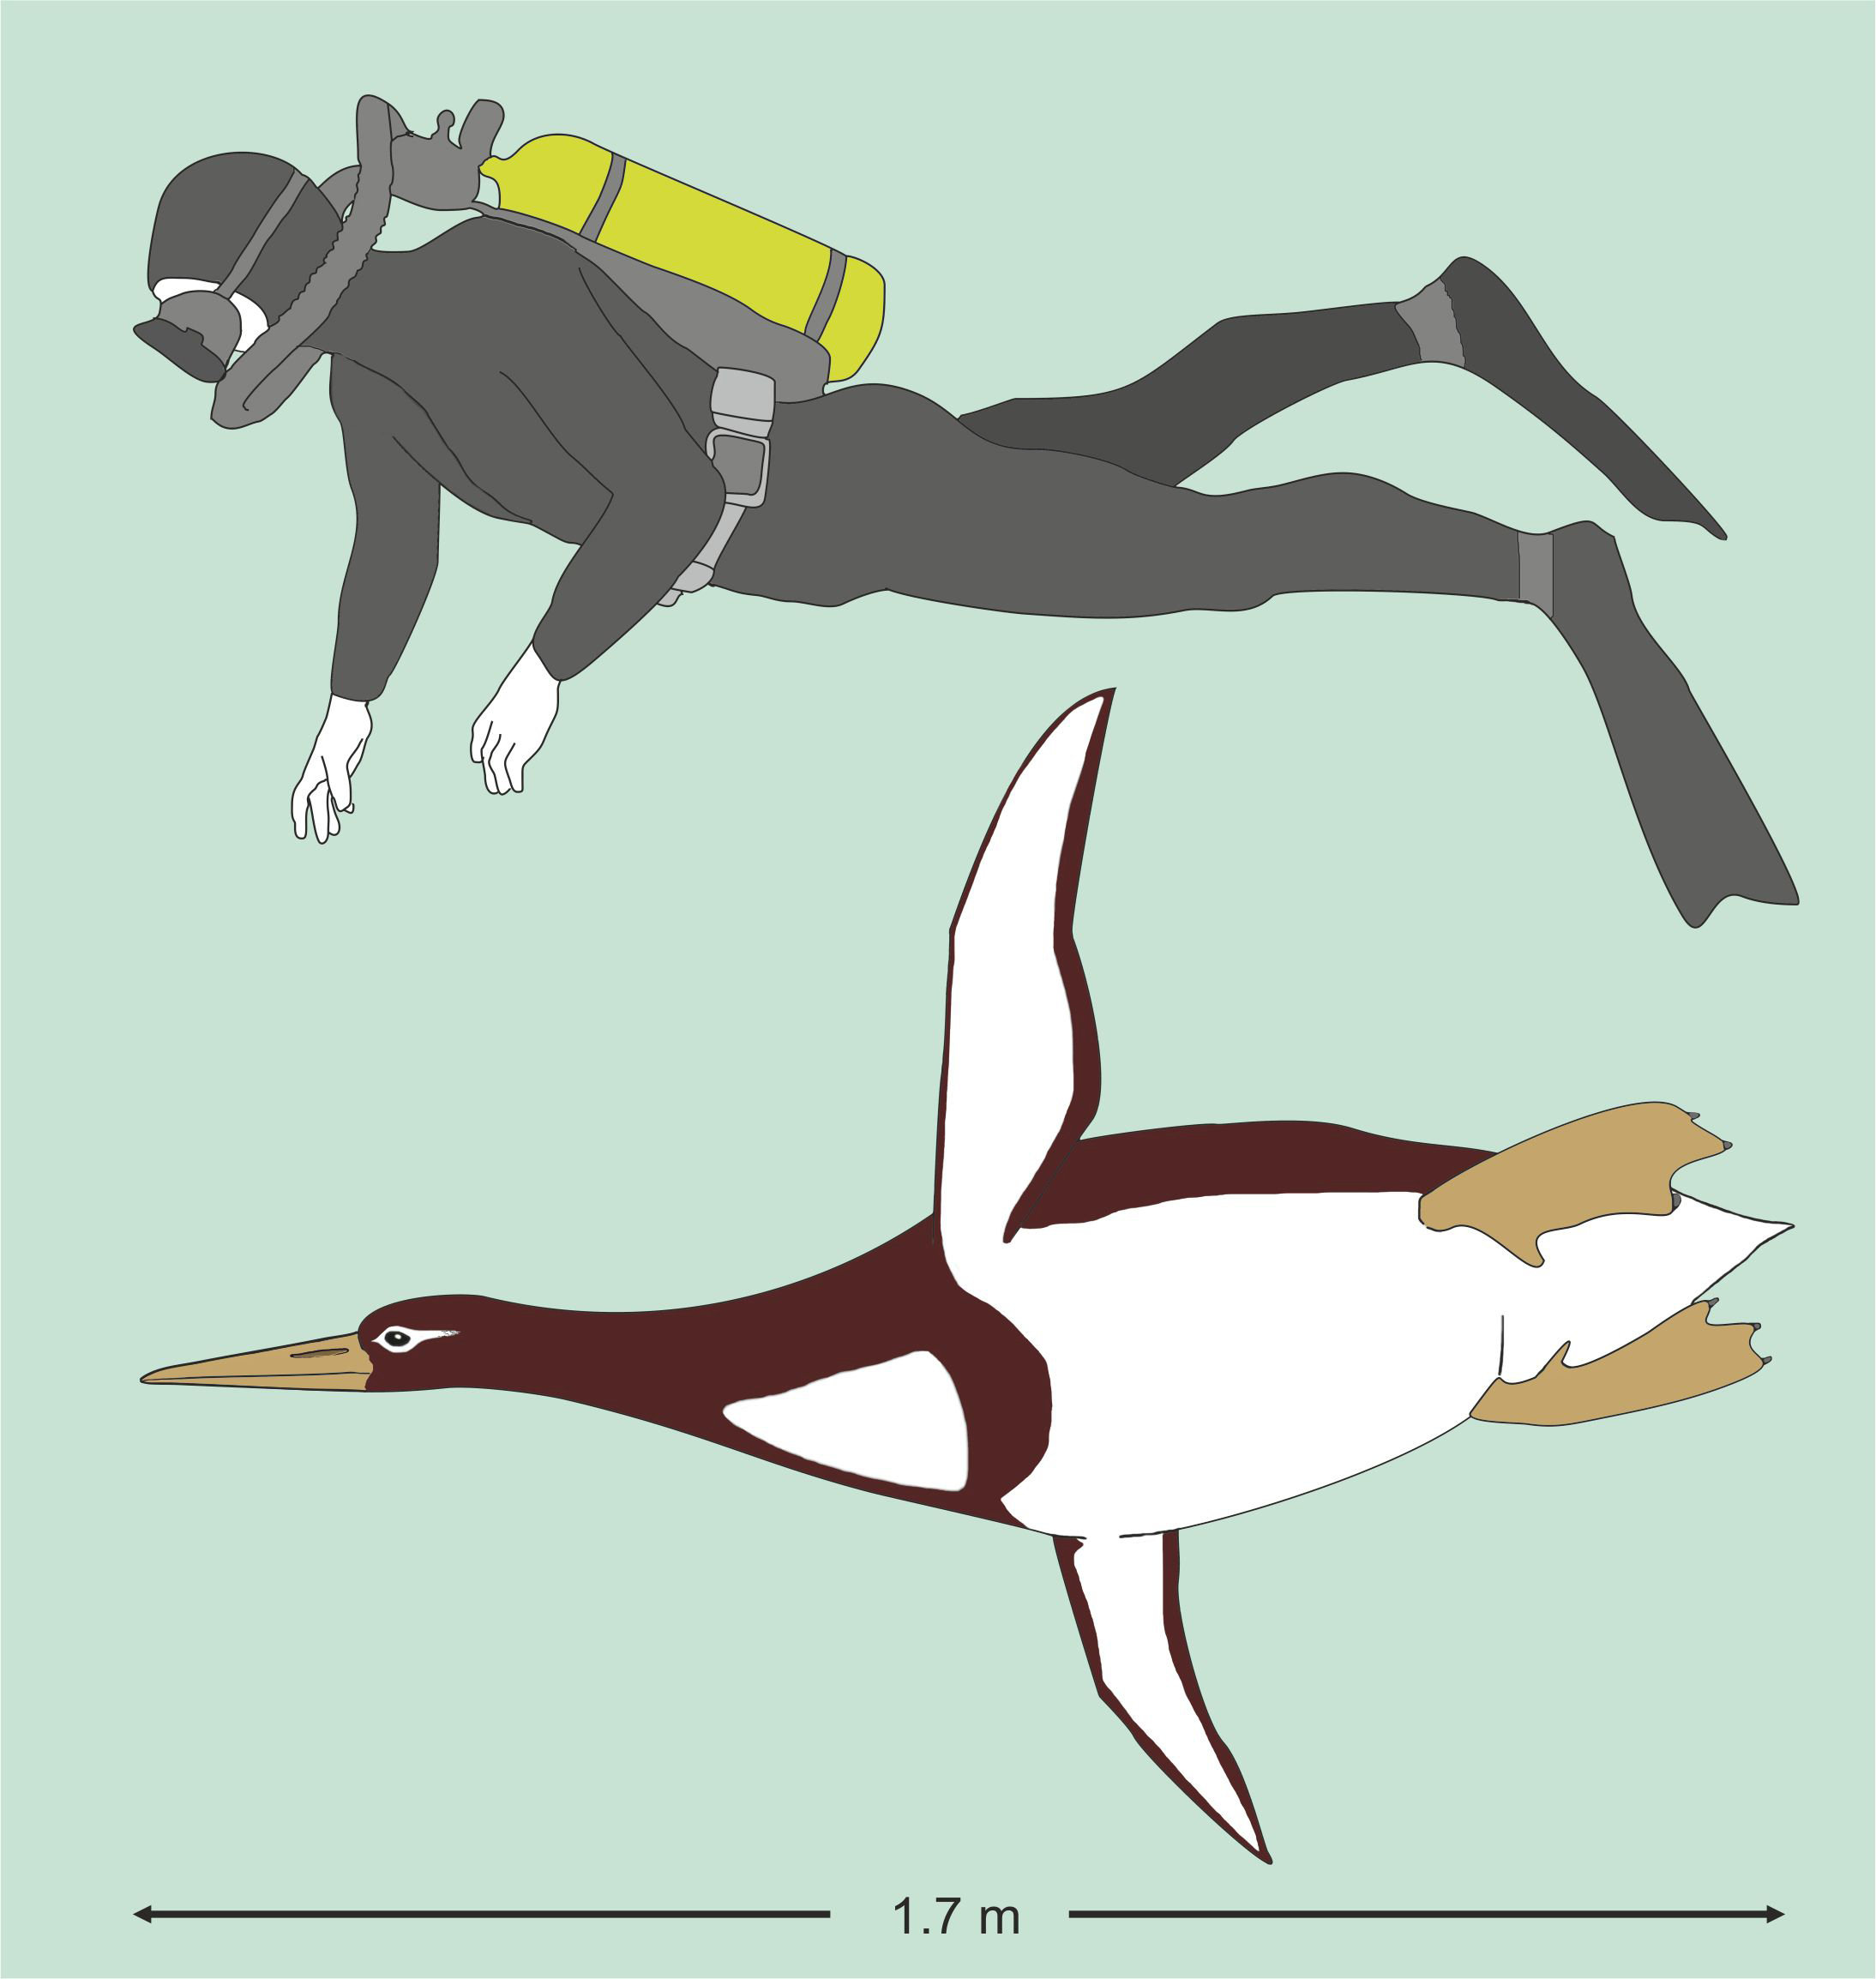 Kumimanu biceae, an ancient penguin, which lived 55 to 60 million years ago, weighing 225 pounds (101 kg) and measuring nearly 6 feet (1.77 m) is pictured in comparison to a human diver in this handout artist's reconstruction.  G. Mayr/Senckenberg Research Institute/Handout via REUTERS